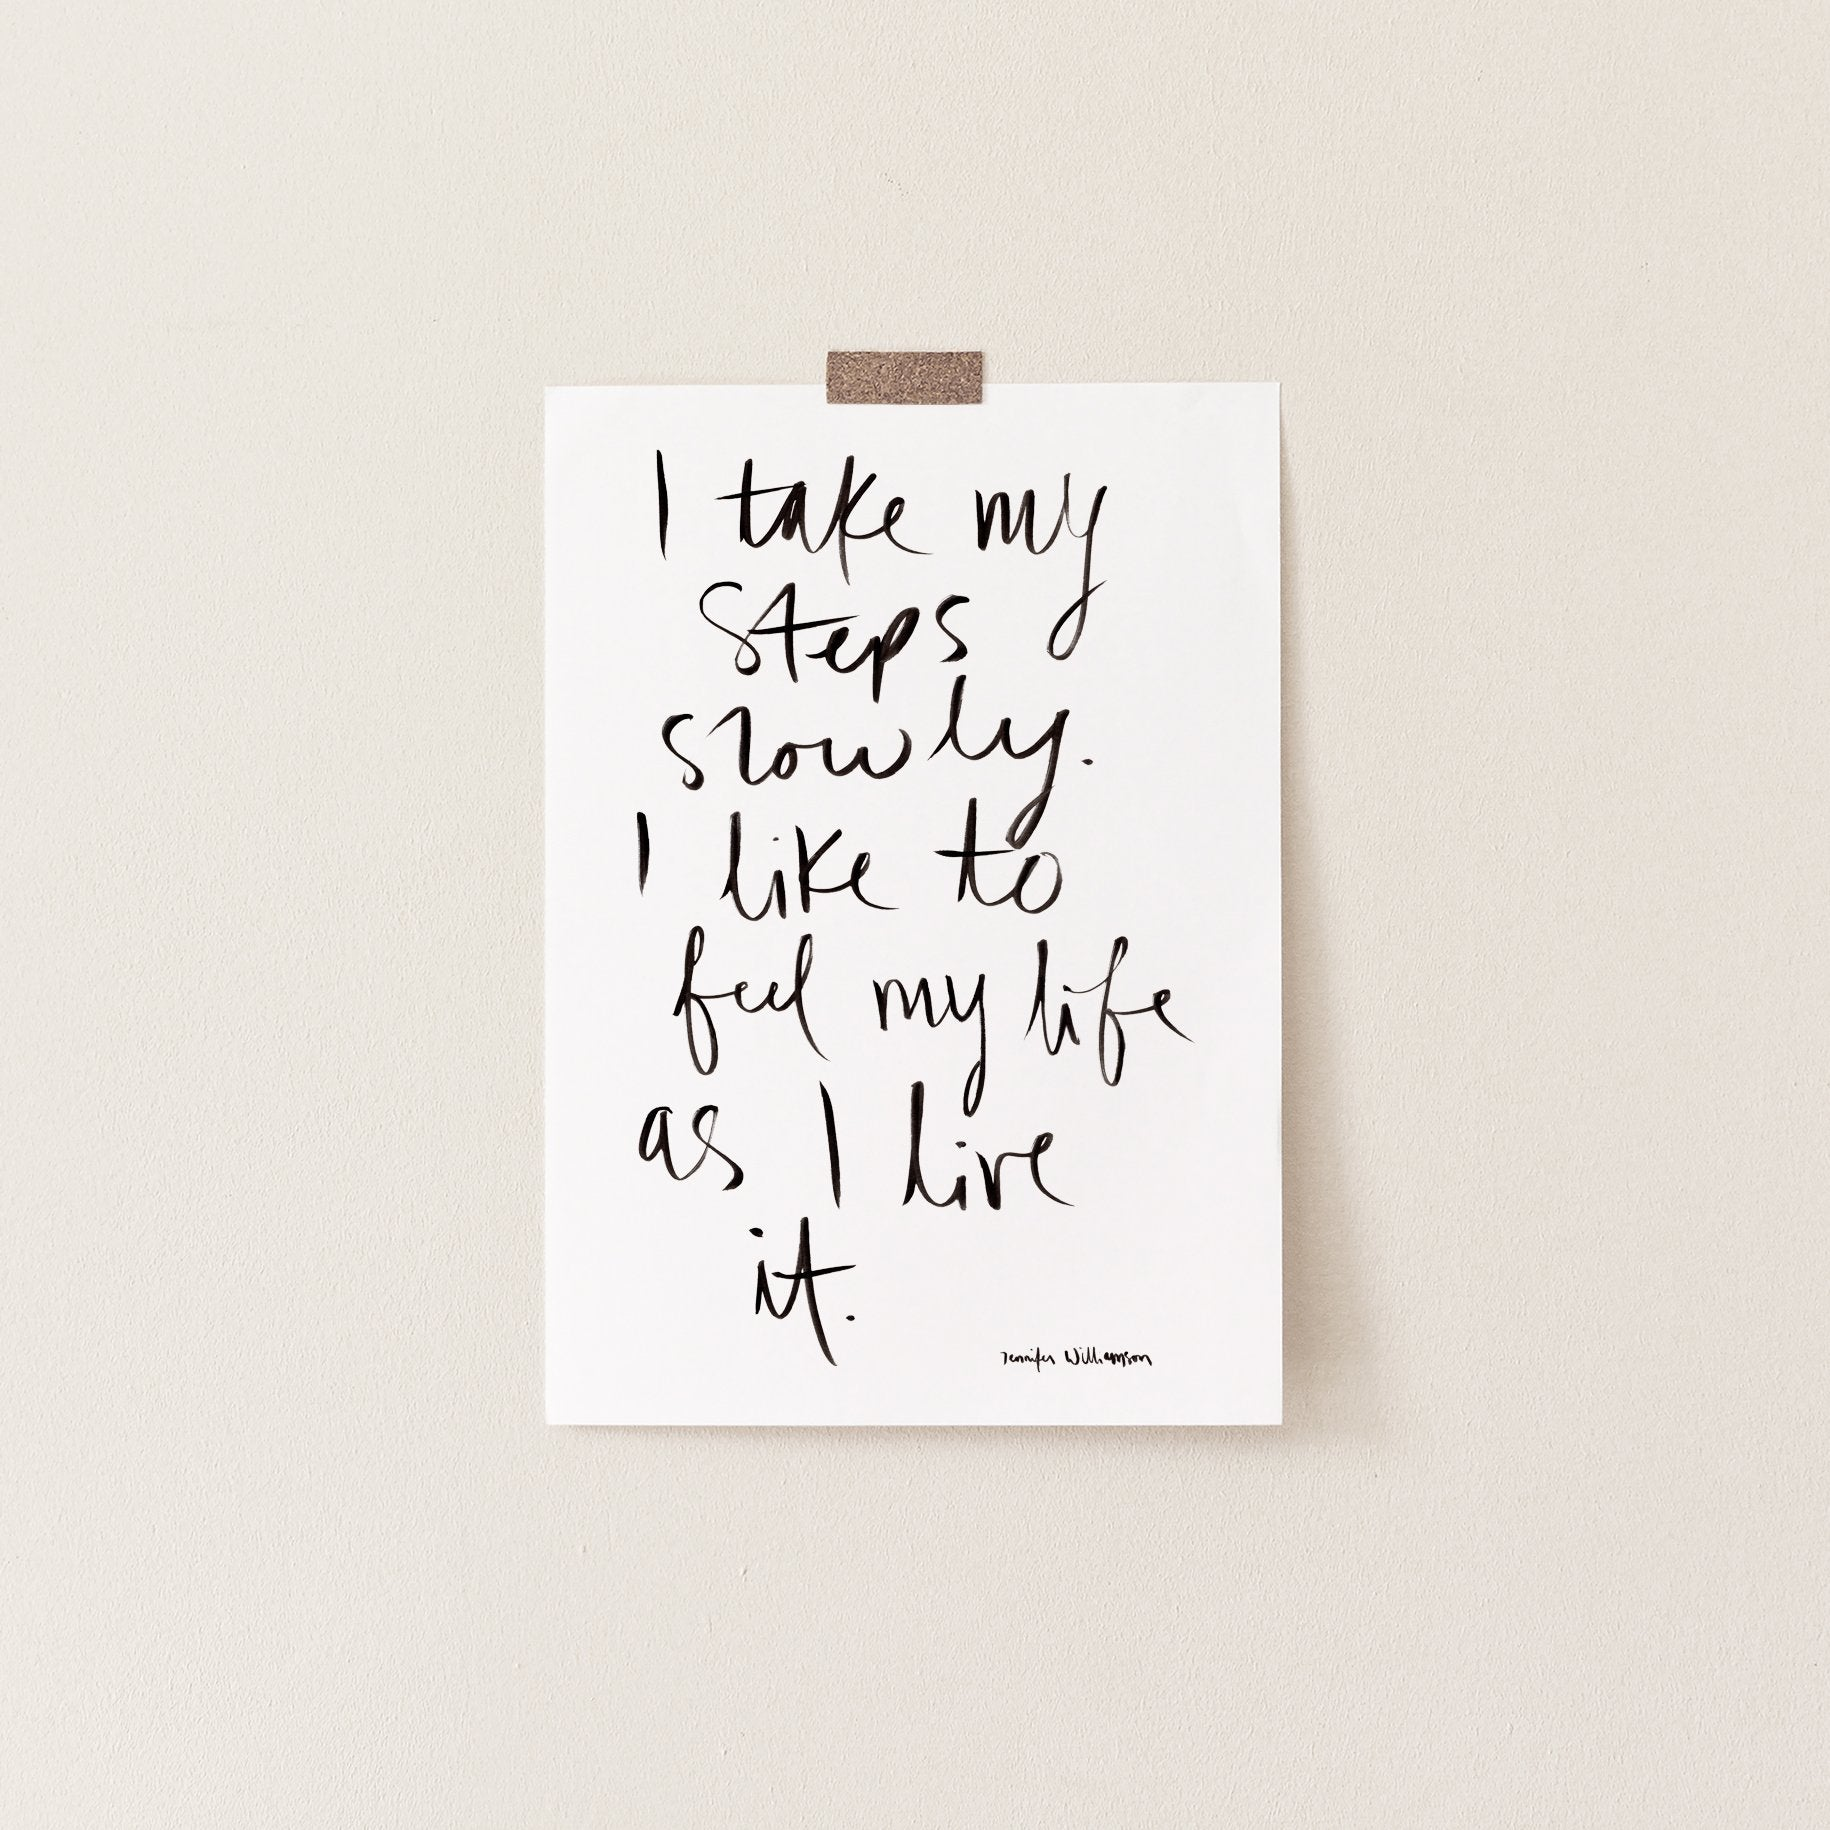 I Take My Steps Slowly Hand Lettered Affirmation Art Print